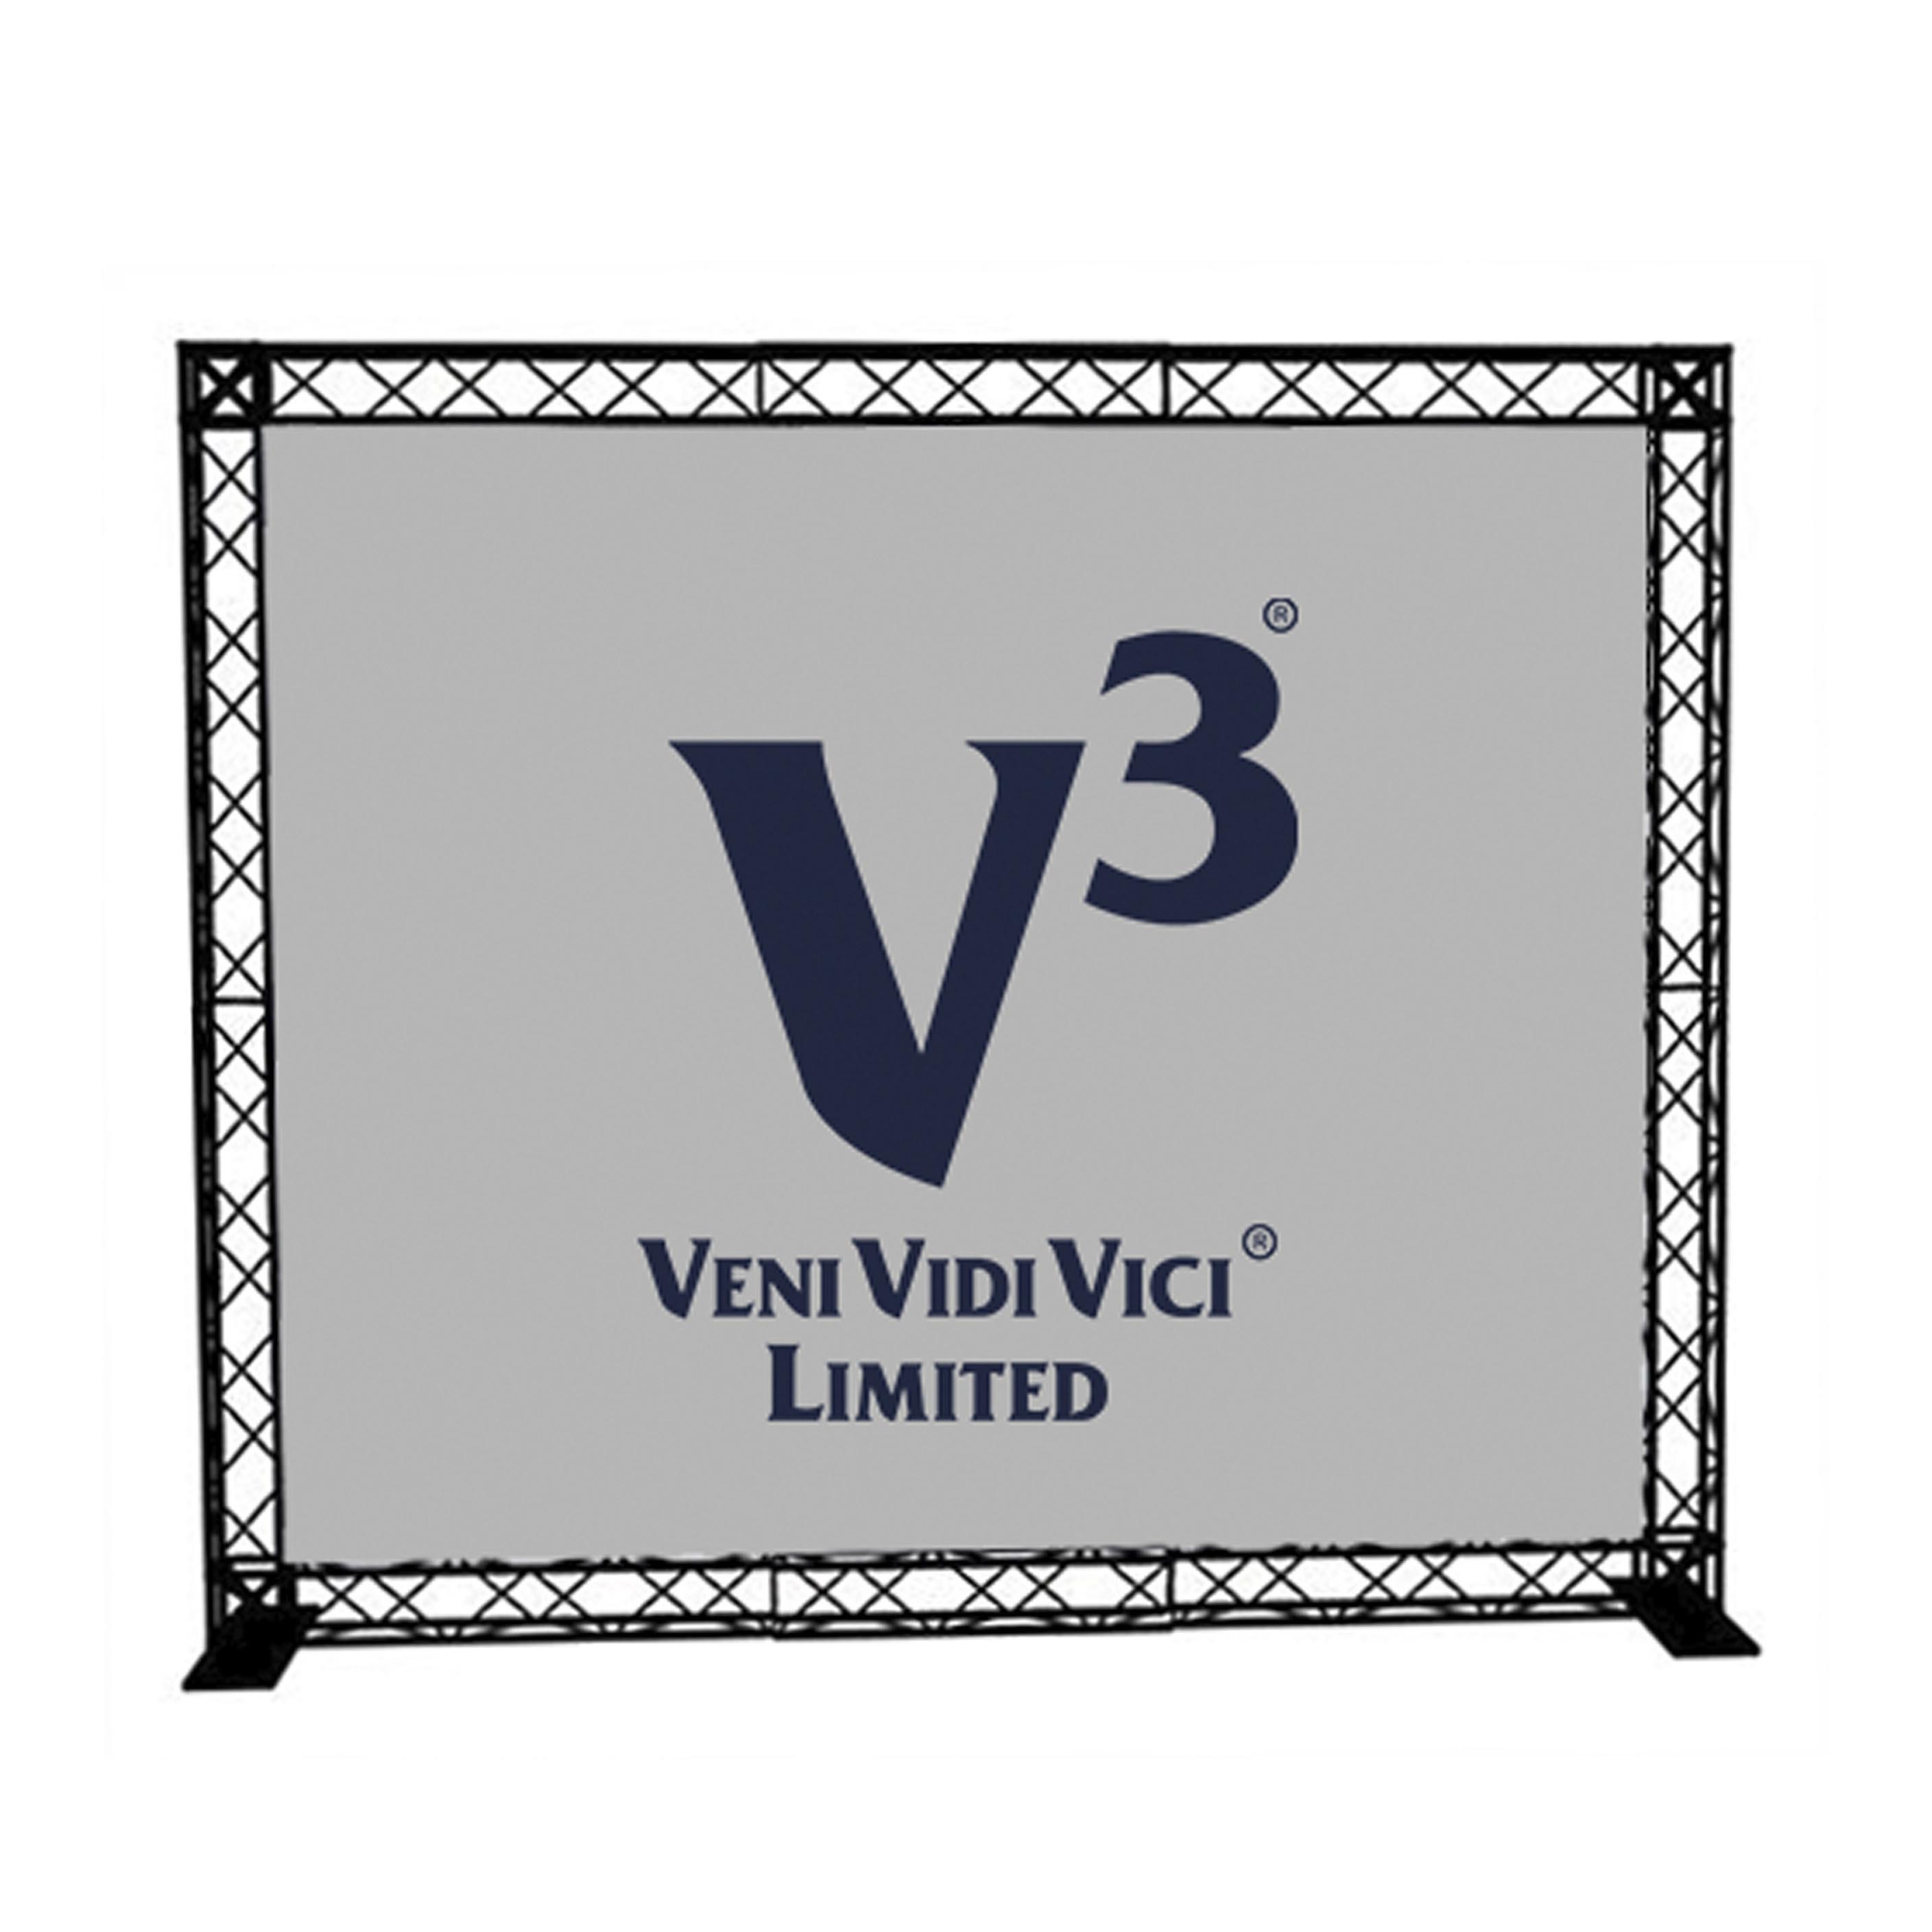 Hire Mini Truss Banners, event furniture hire